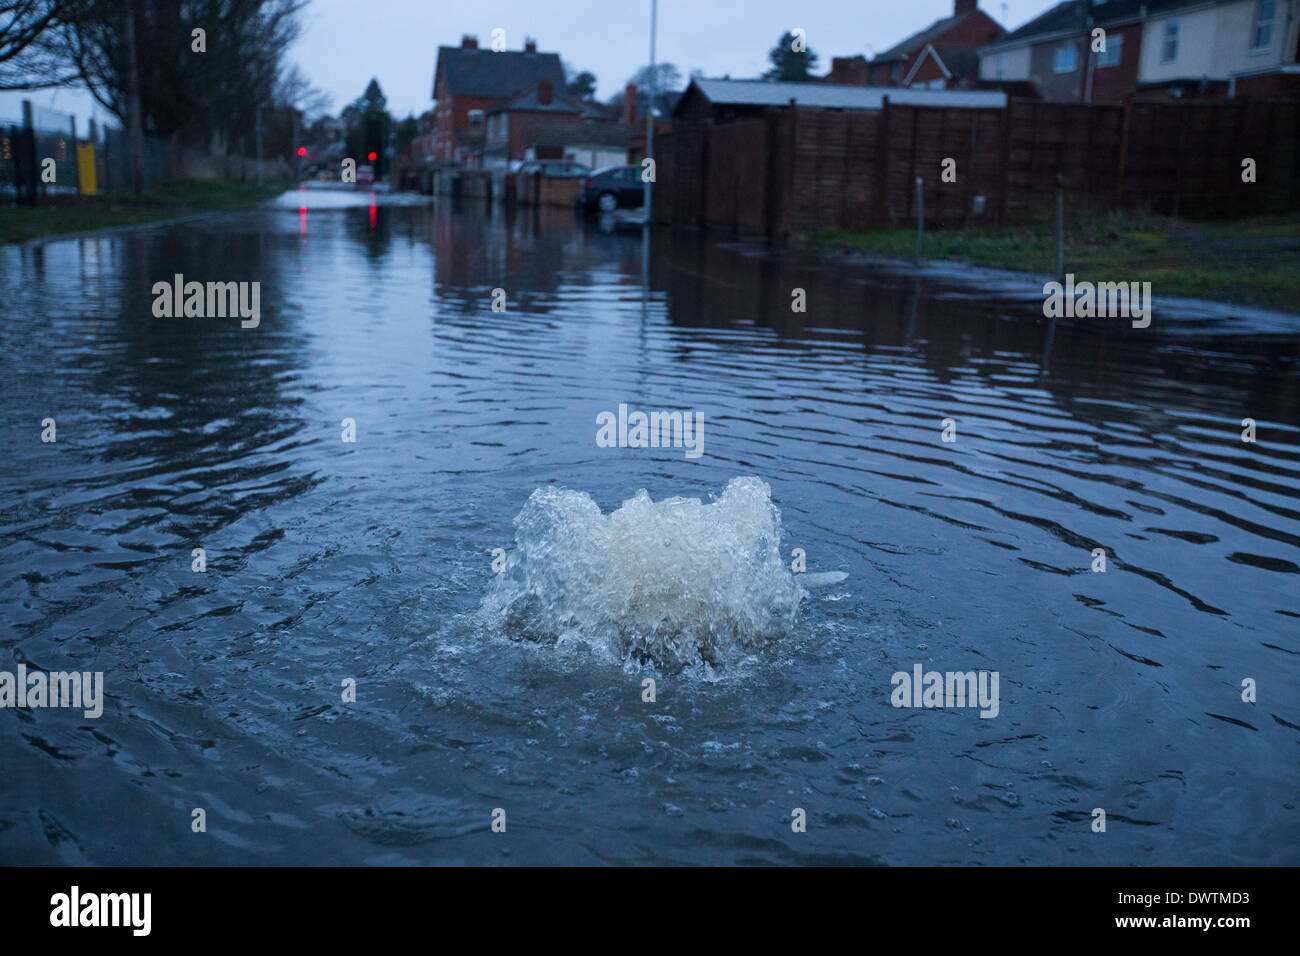 Flood water bubbling up through a drain in Worcester, UK, after the River Severn burst its banks. - Stock Image